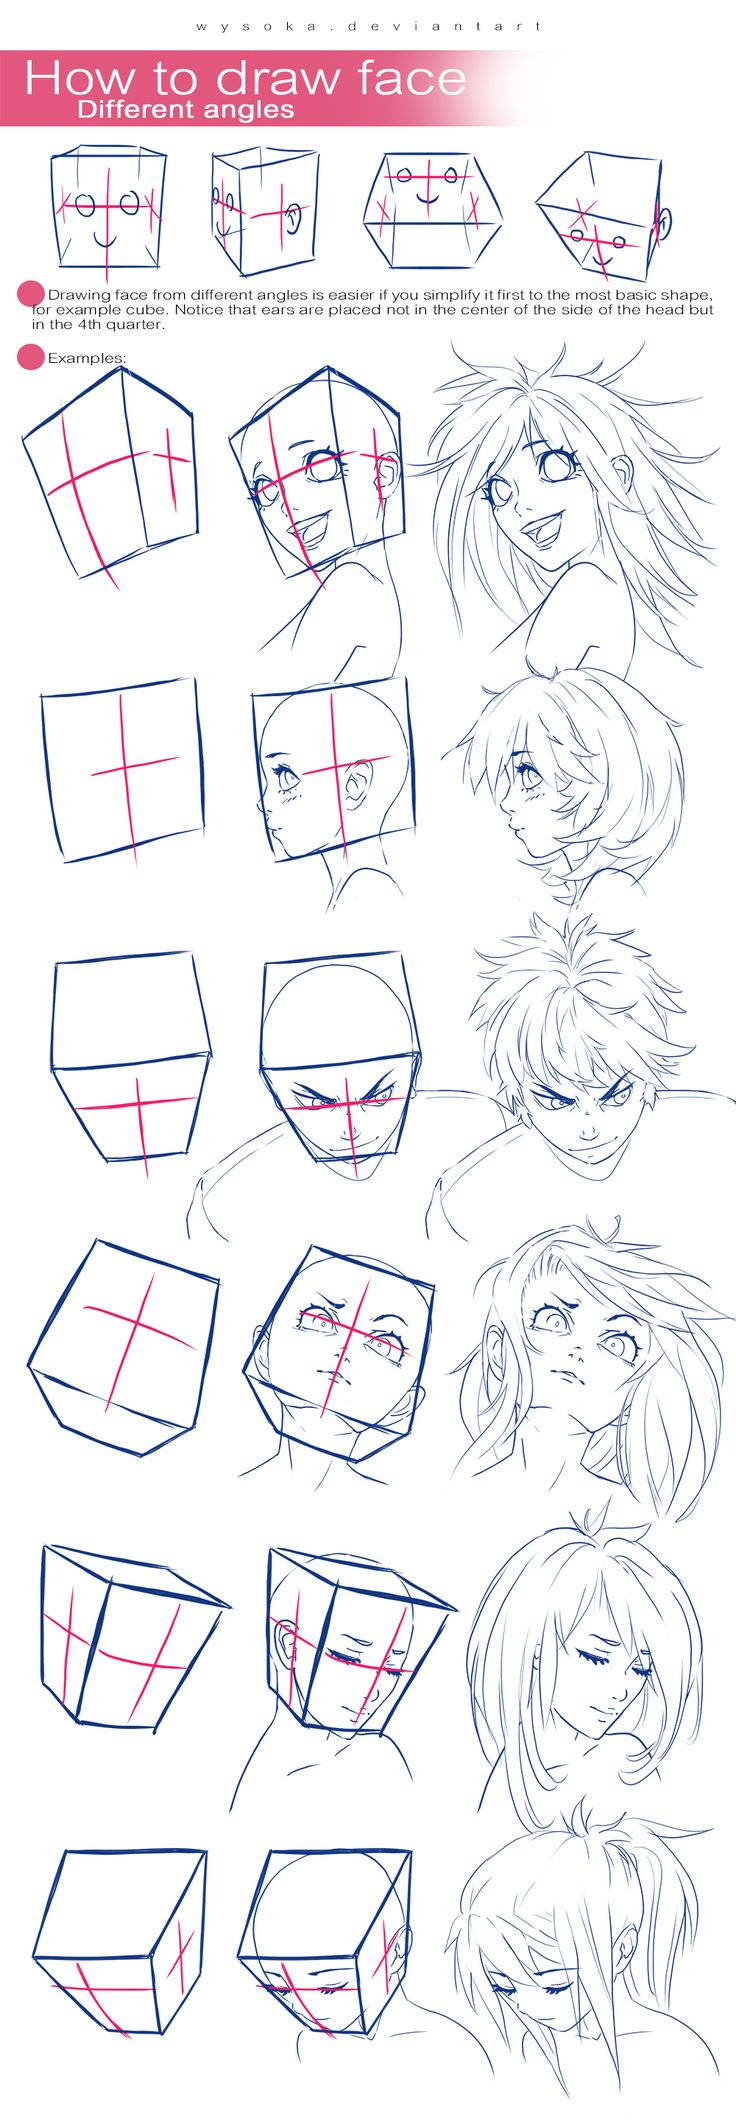 How To Draw Face - Different Angles by wysoka.deviantart.com on @DeviantArt